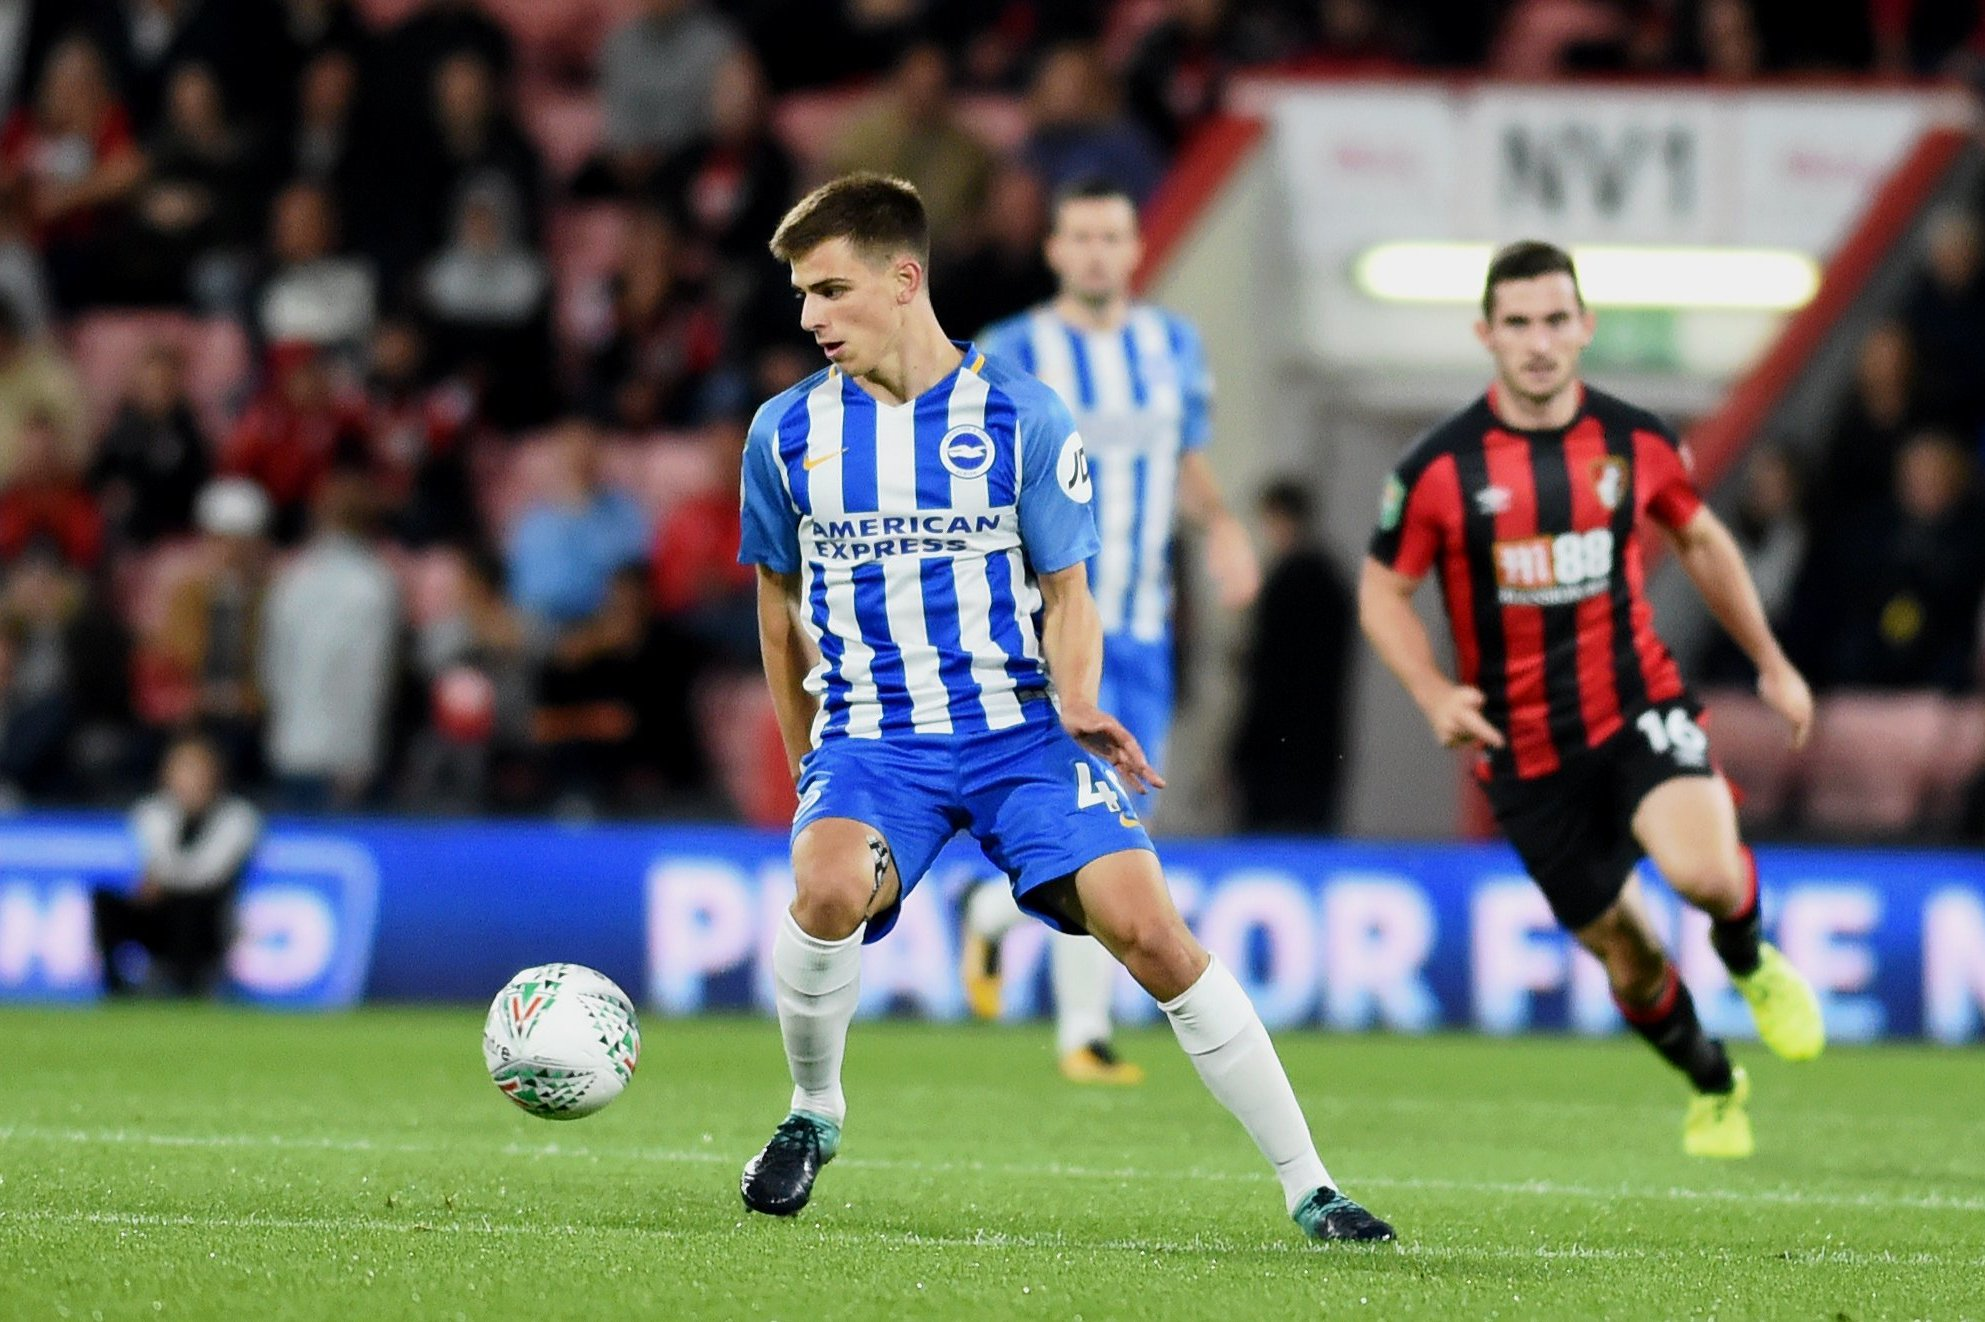 Albion midfielder Jayson Molumby has good vibes about Albion under Potter